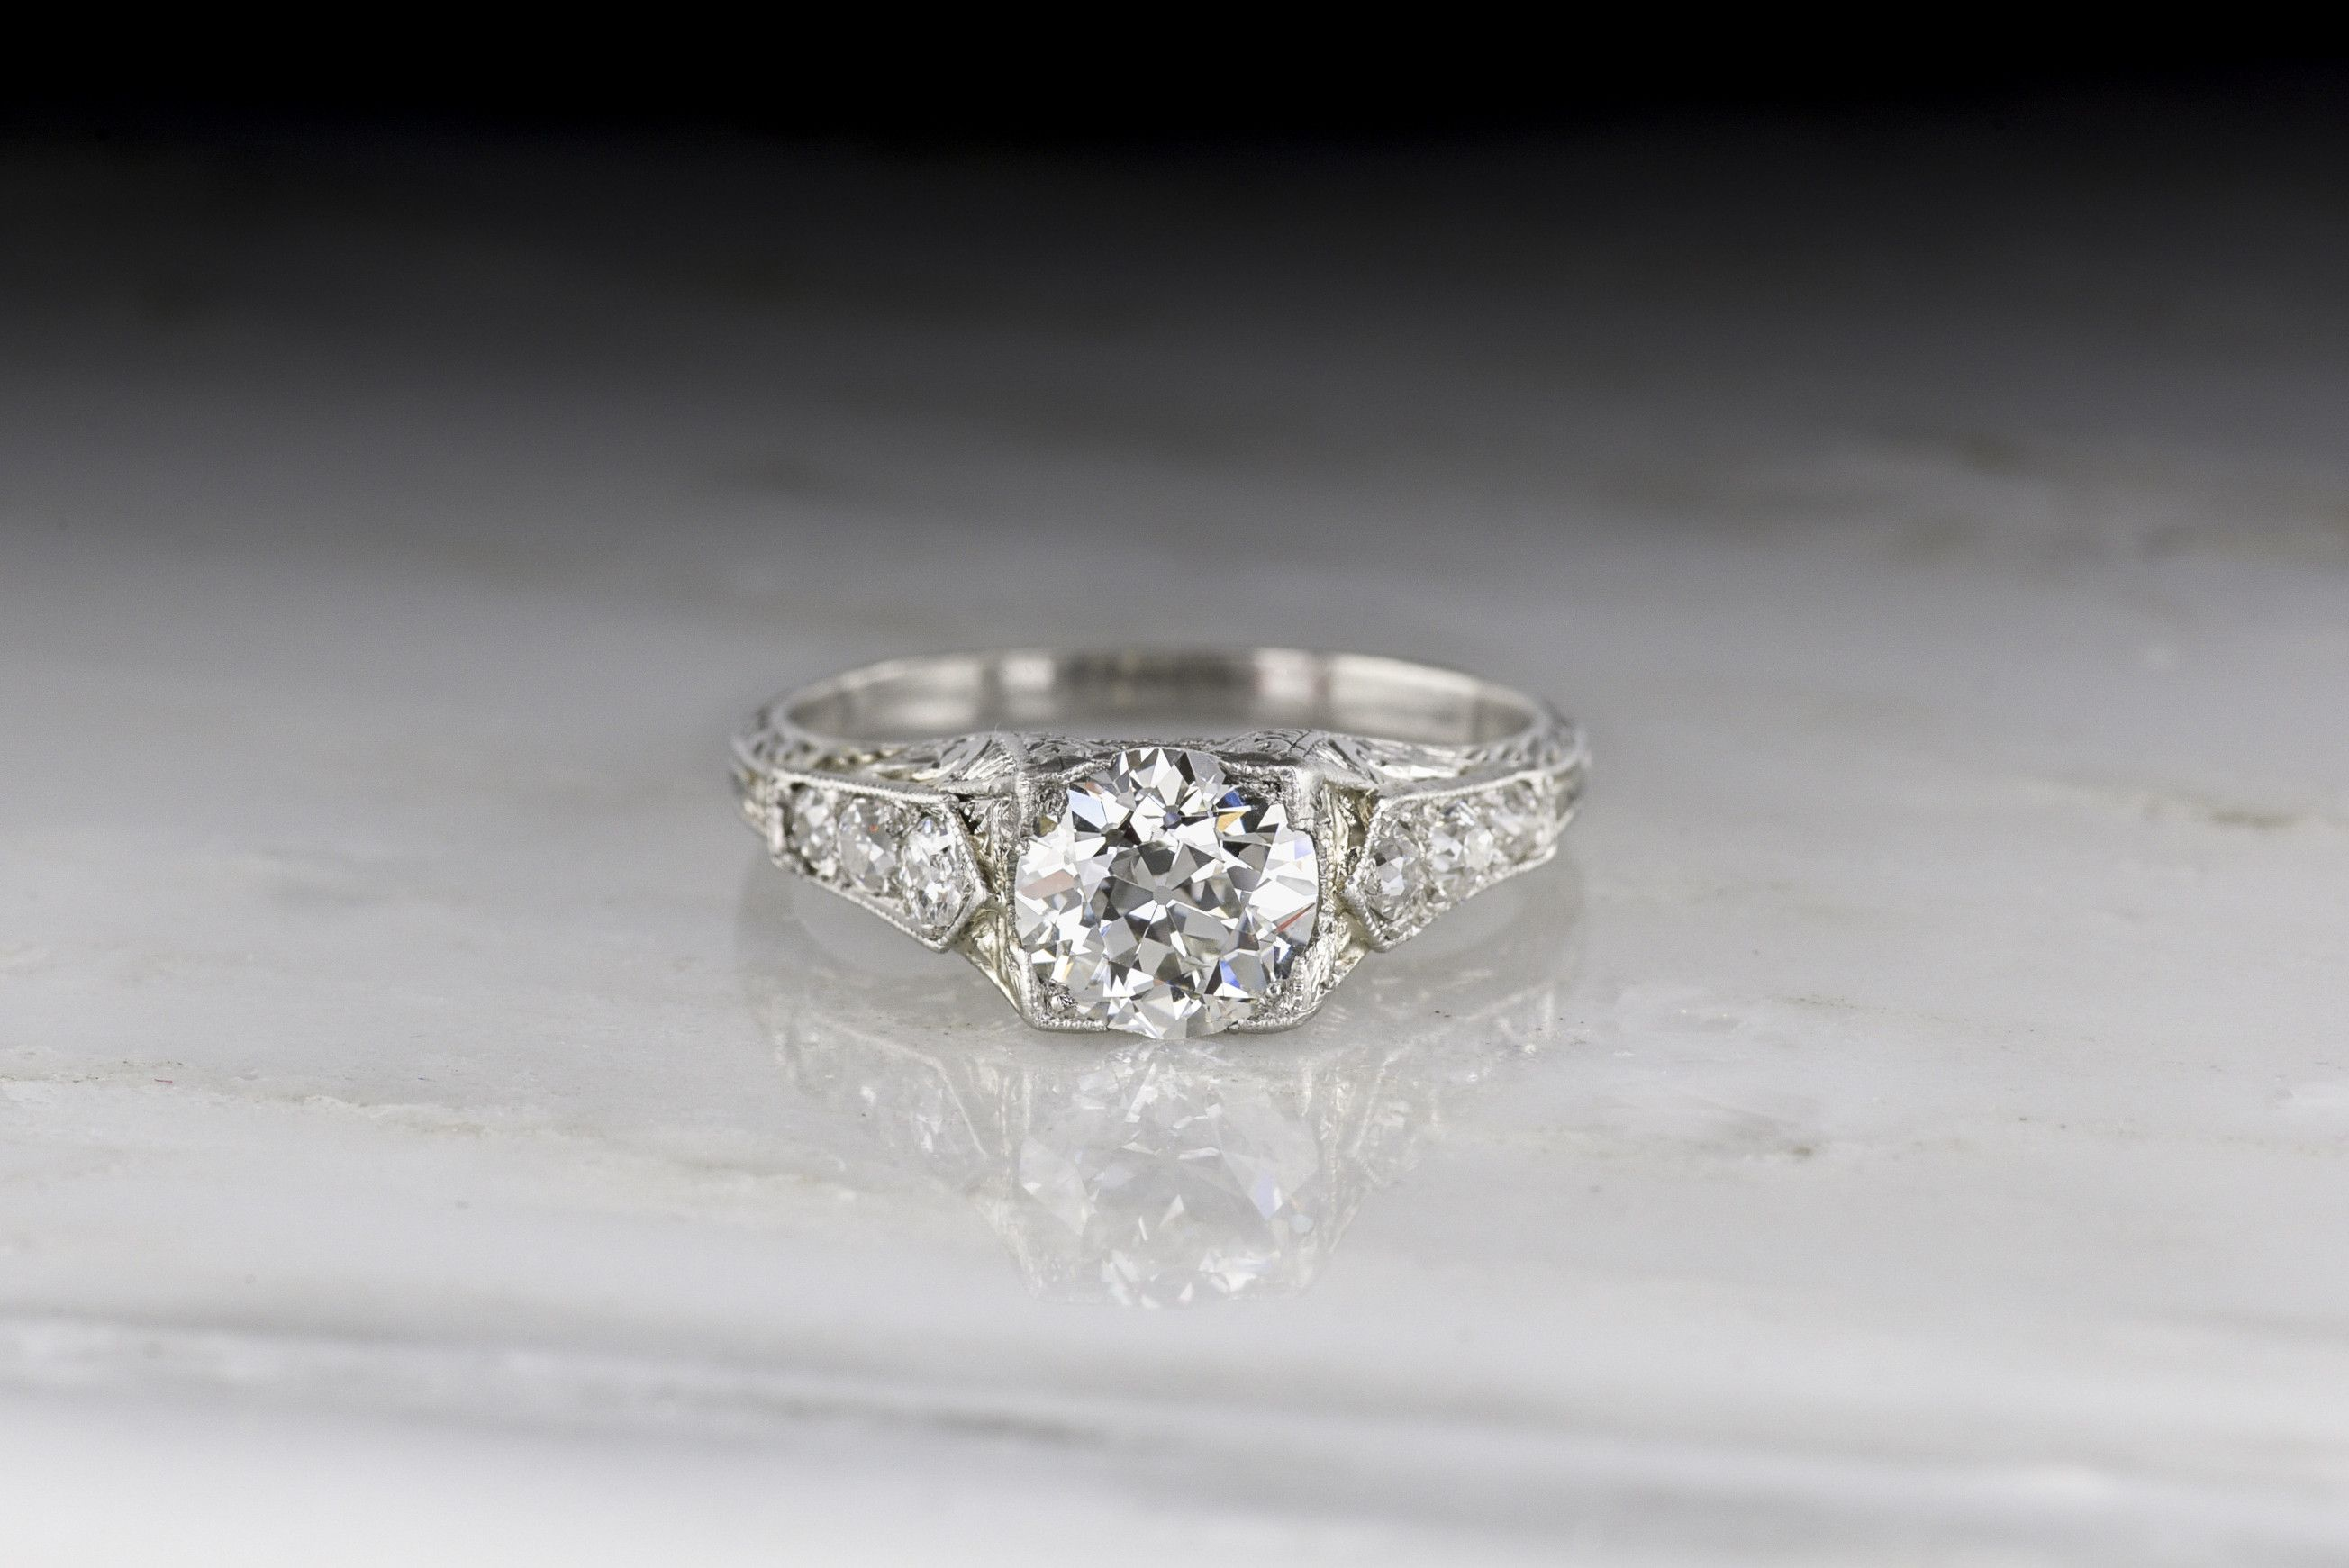 4c4dd361d Antique Edwardian Engagement Ring with a GIA Certified Old European Cut  Diamond Center; French Japonisme Aesthetic Influence with Ornate Hand  Engraving